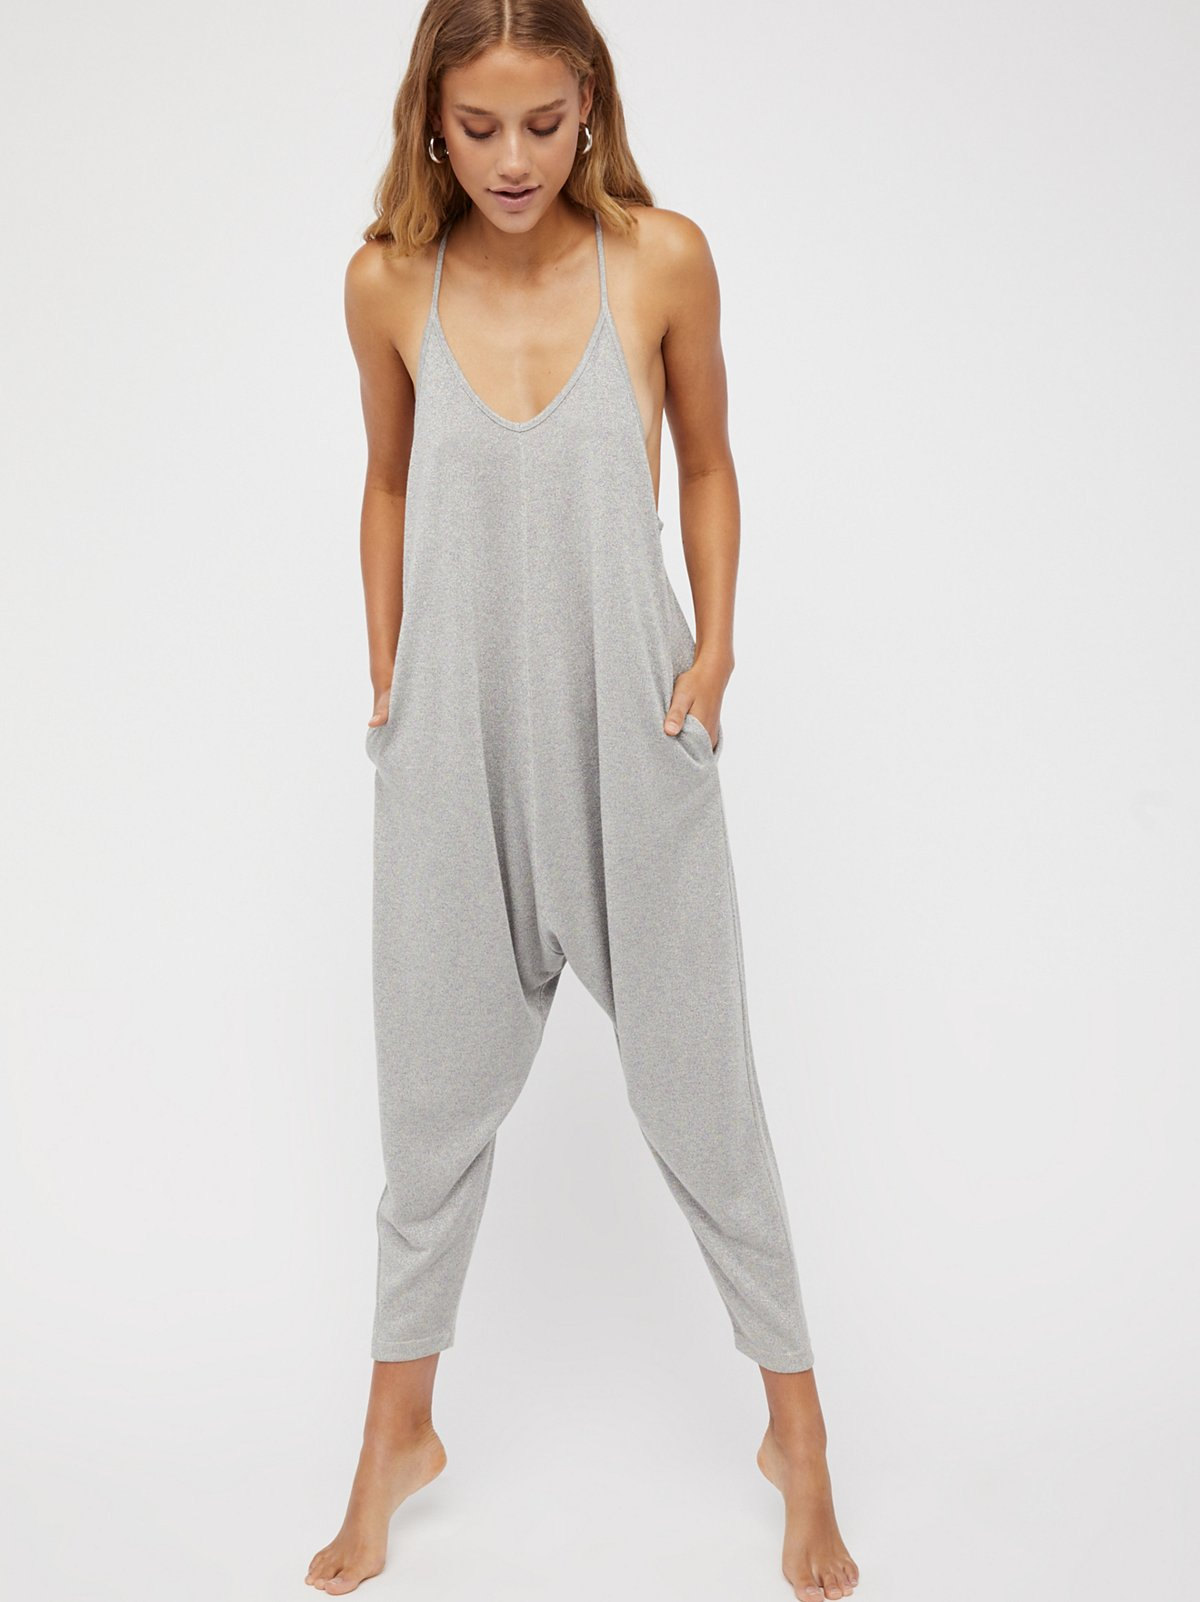 Why Not Shine Jumpsuit